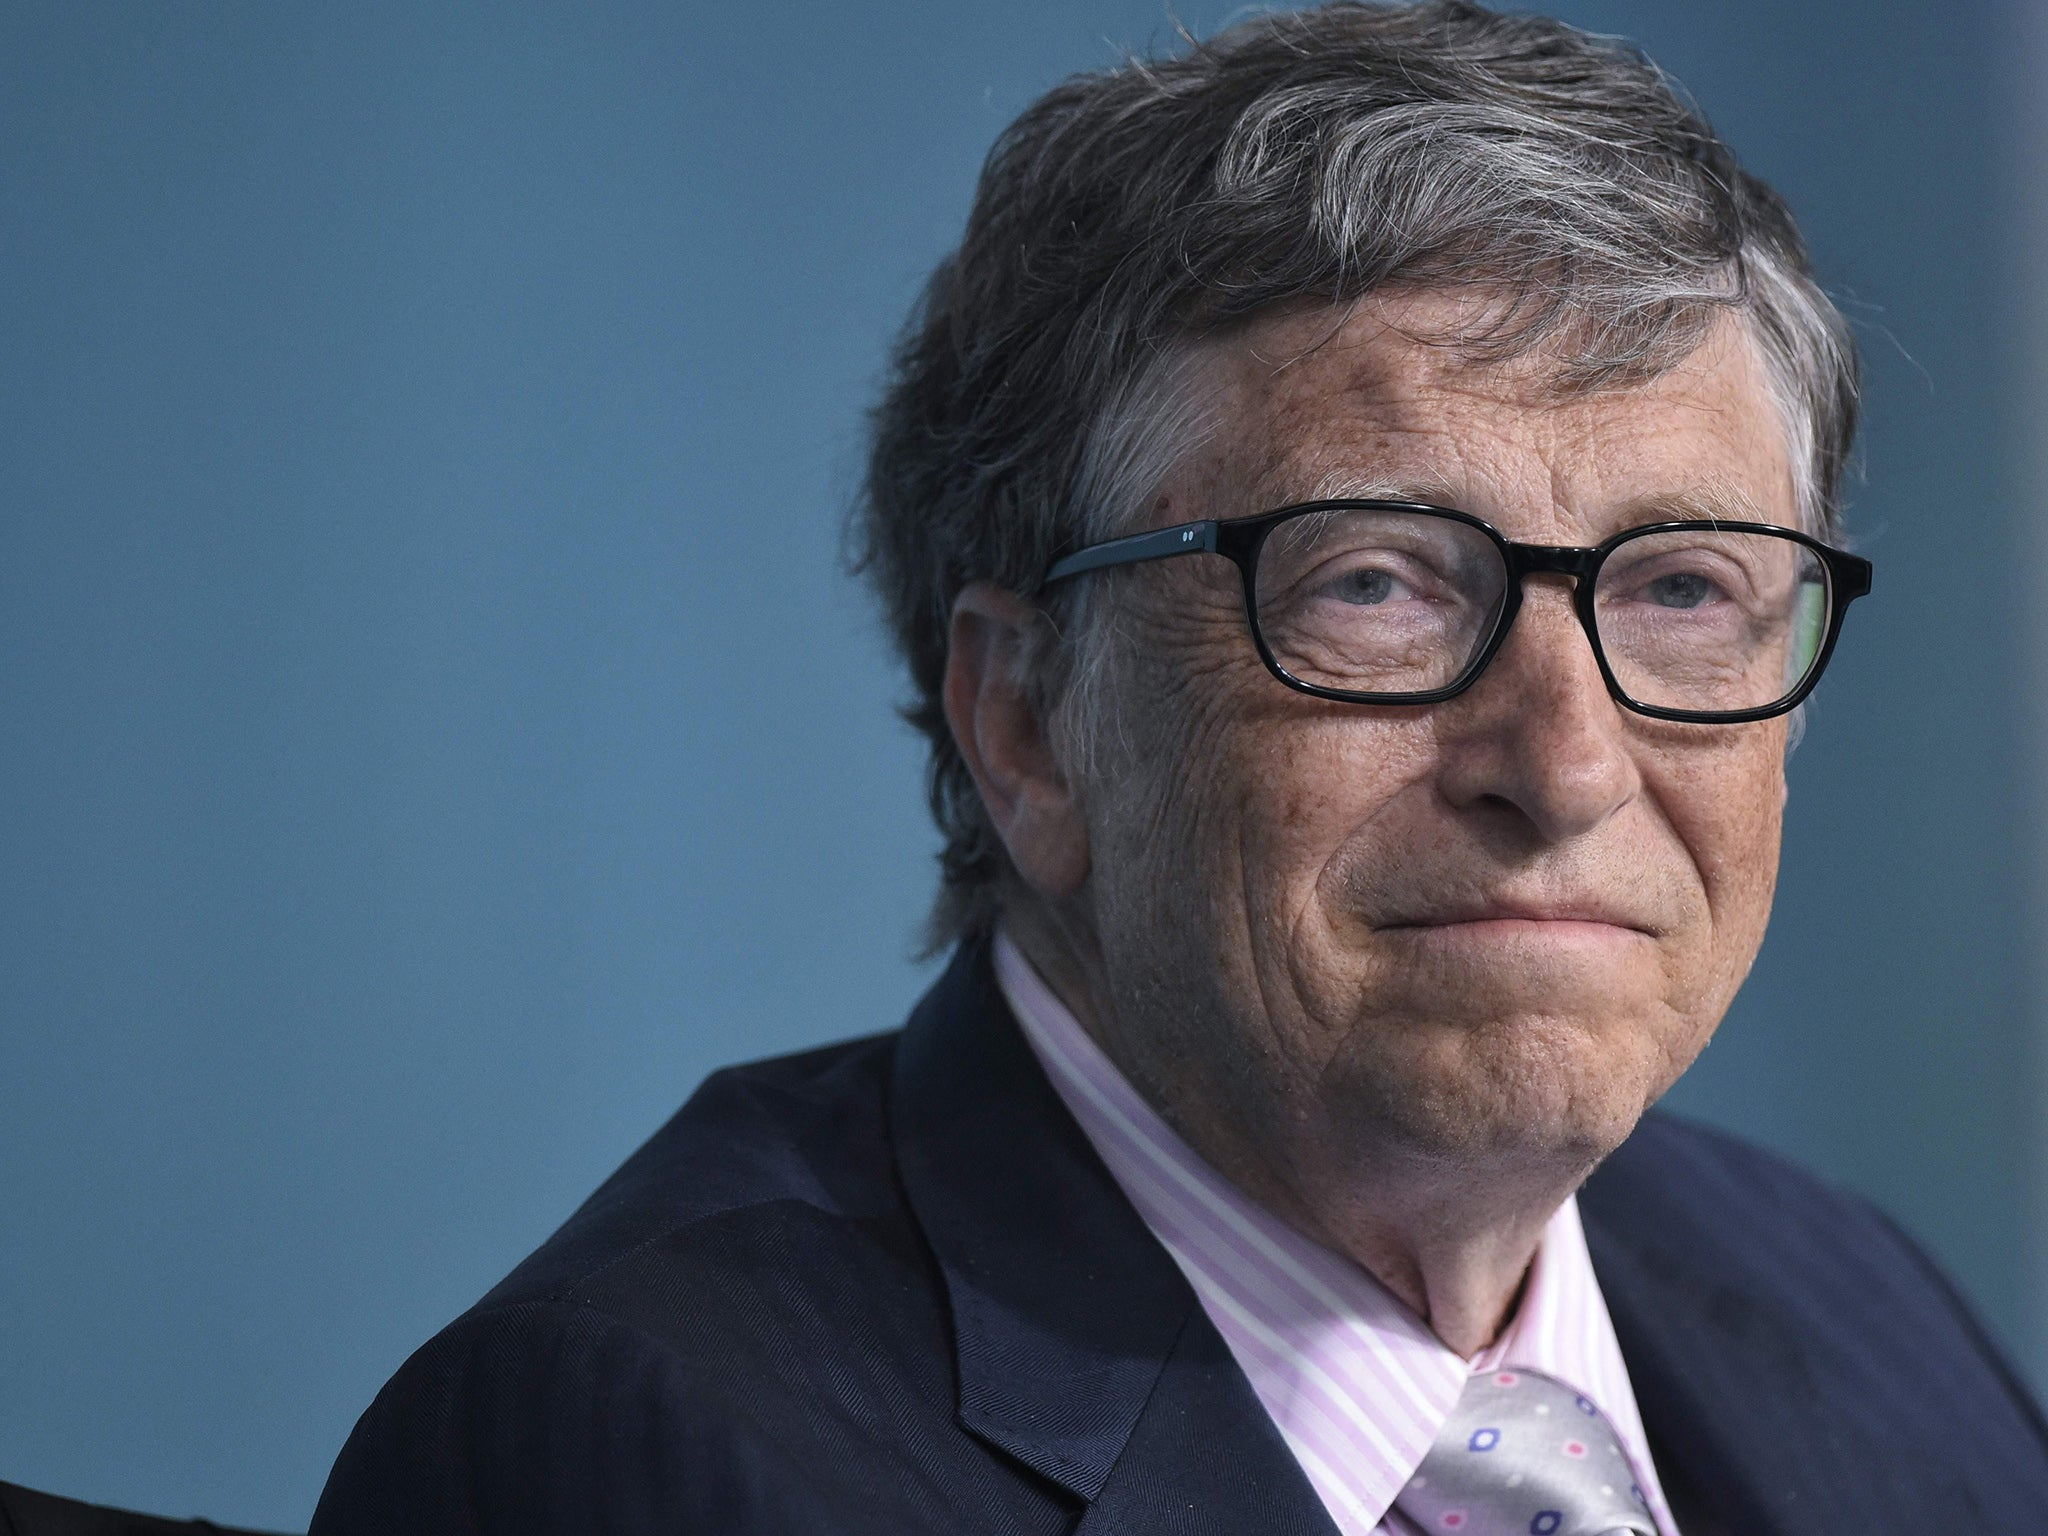 bill gates says three skills are essential for success in future bill gates says three skills are essential for success in future job market the